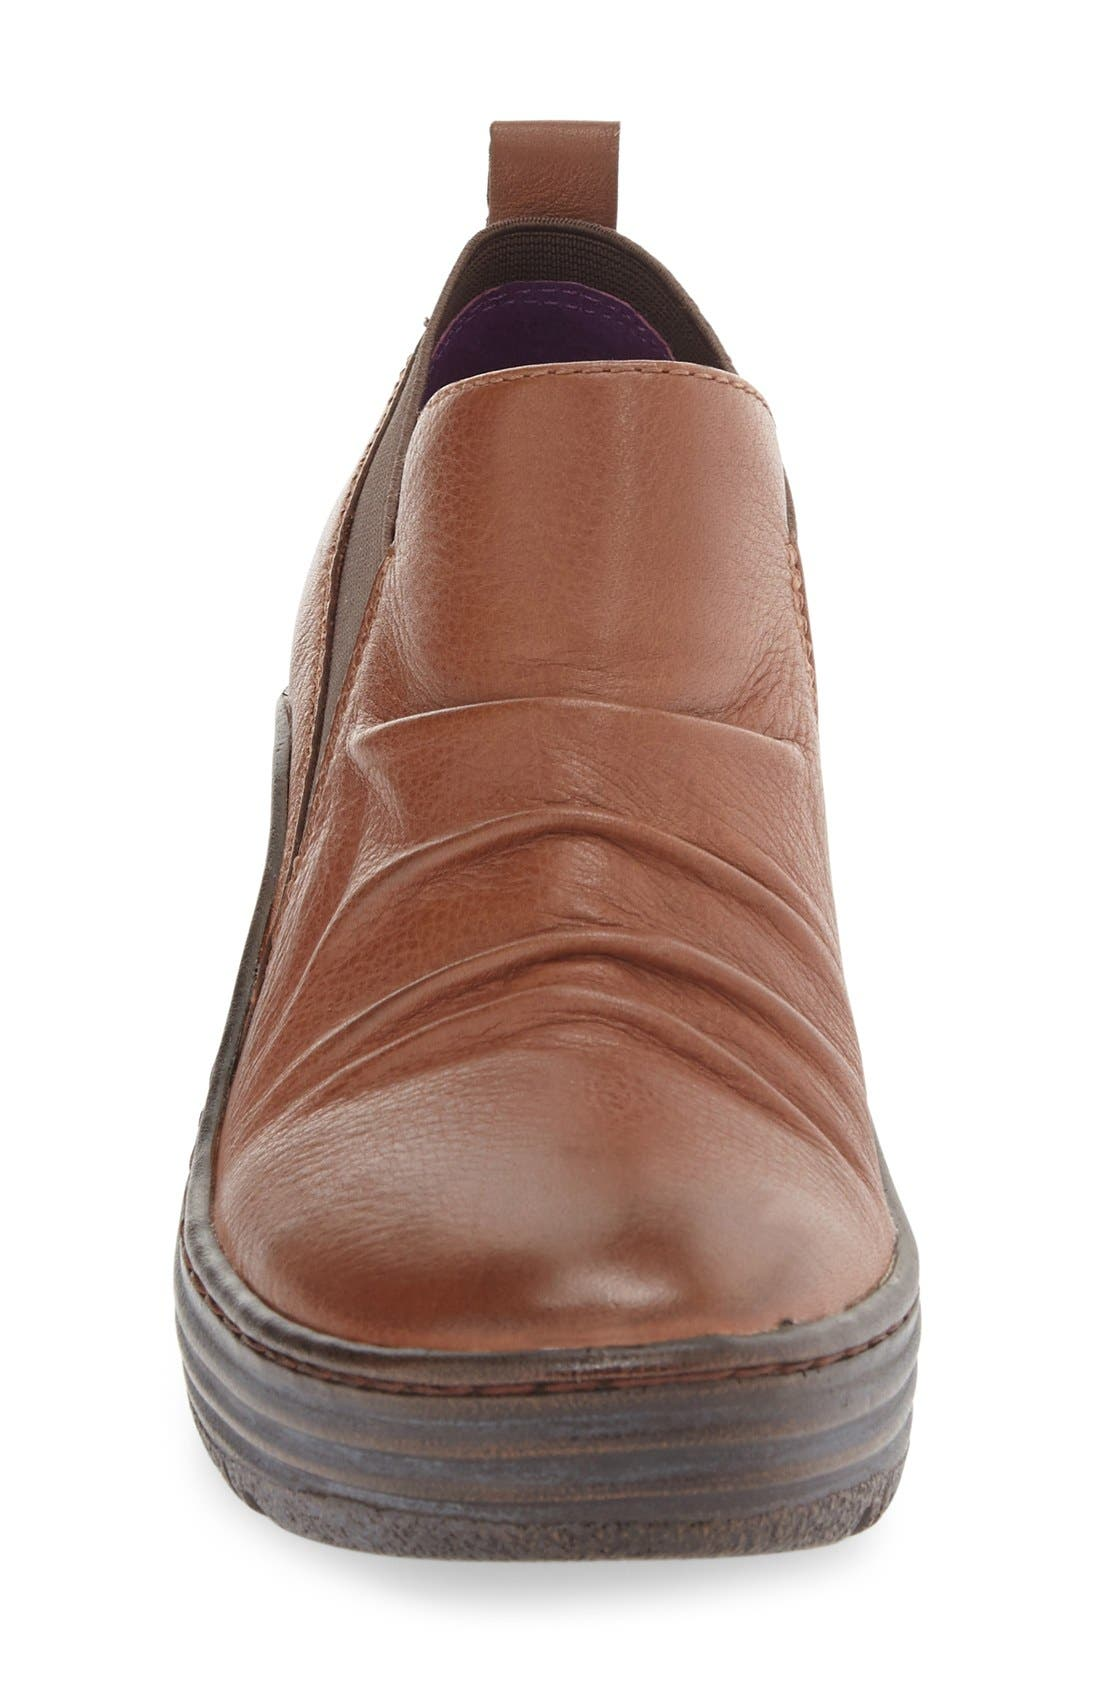 'Gallant' Leather Bootie,                             Alternate thumbnail 3, color,                             PINECONE LEATHER